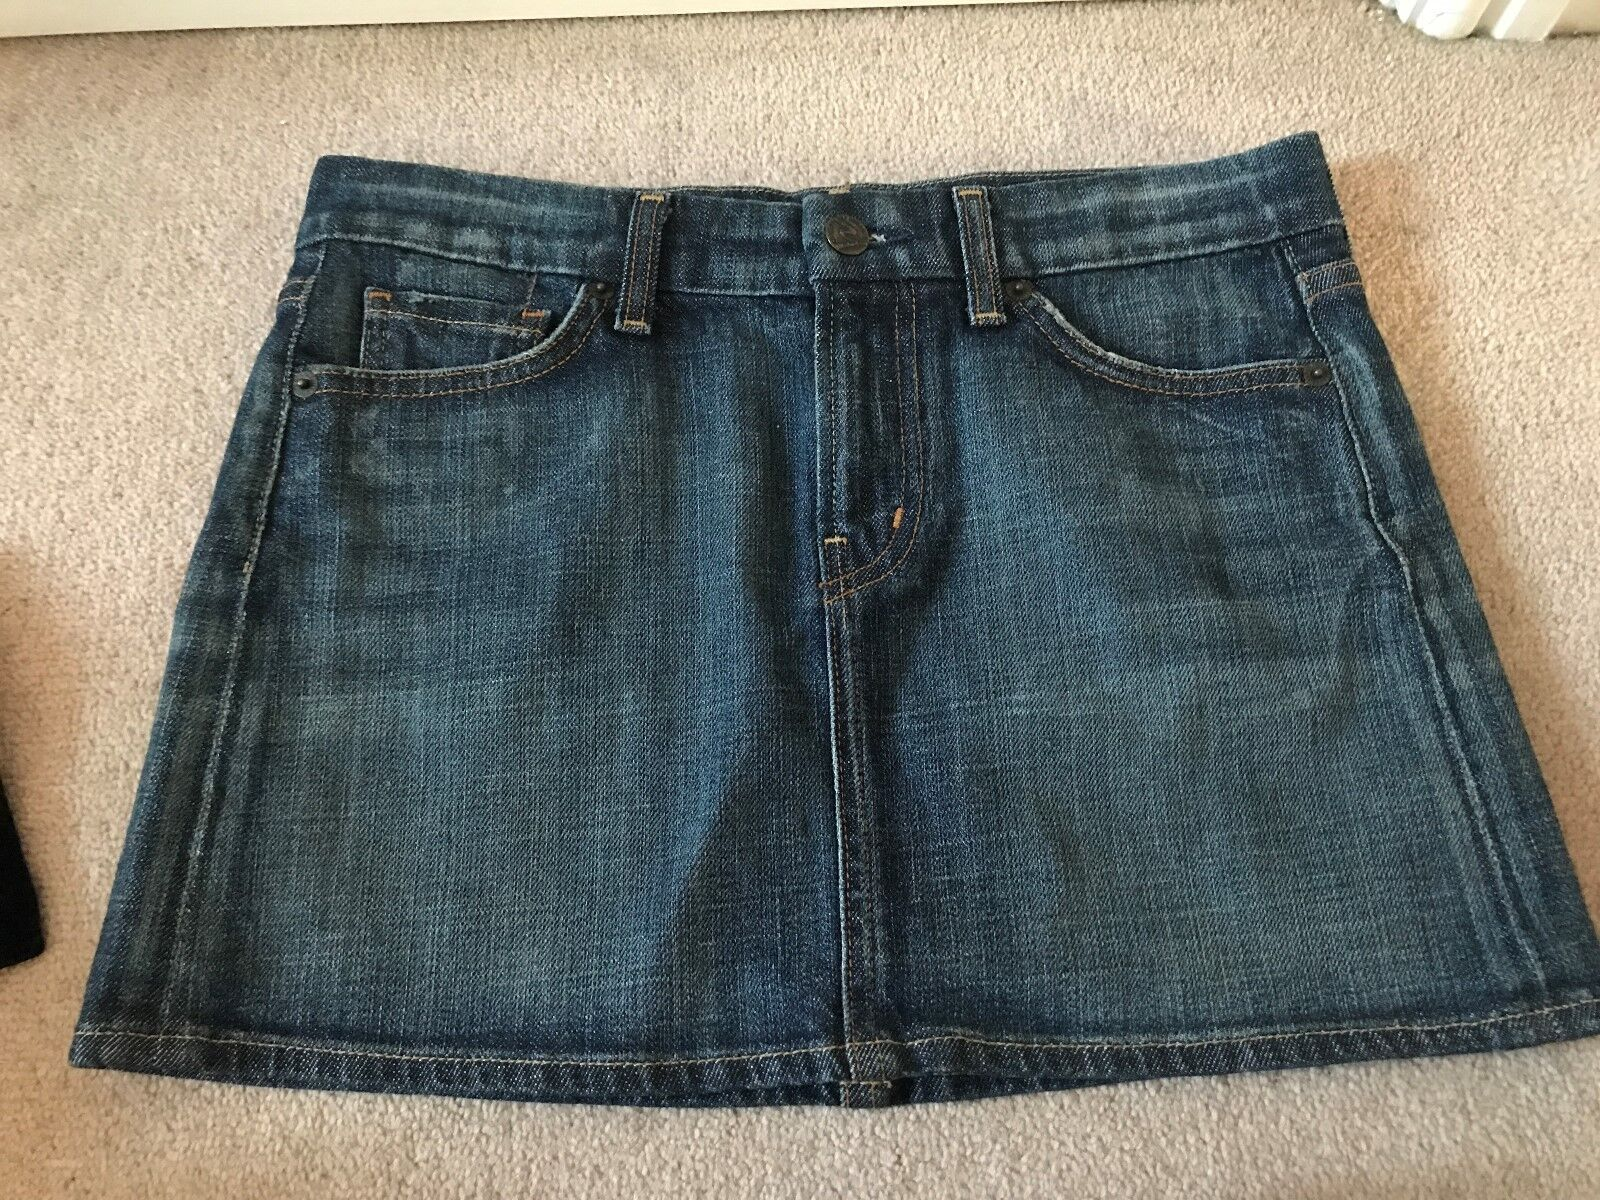 NEW 100% GENUINE CITIZENS OF HUMANITY MID blueE DENIM MINI SKIRT WAIST 27